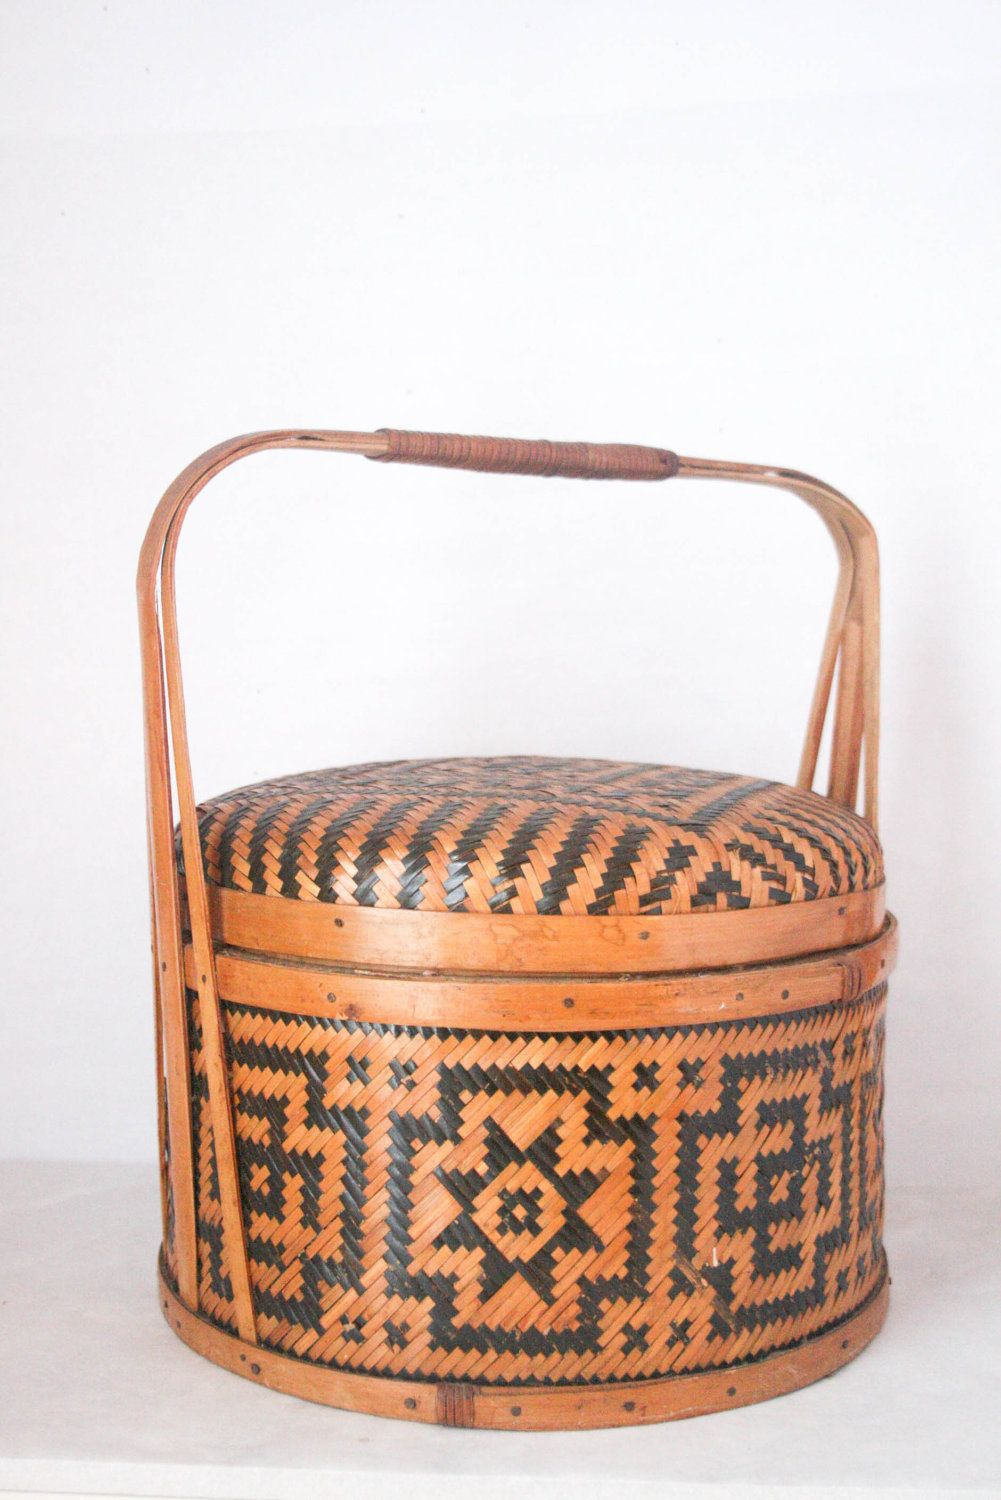 SALE Vintage Woven Basket - Sewing Basket, Picnic Basket, Aztec, Wicker. $52.00, via Etsy.